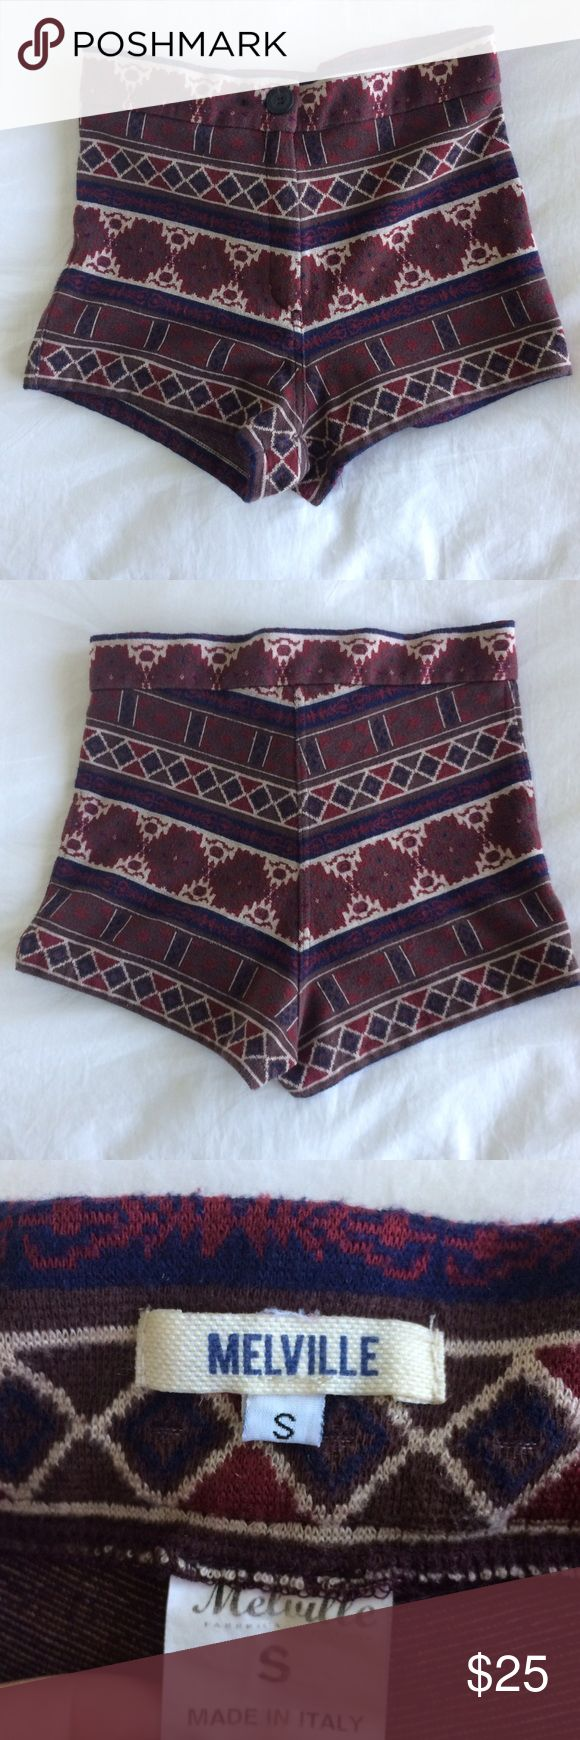 high rise aztec shorts adorable and soft high rise aztec / tribal patterned shorts from Brandy Melville (not LF). can be worn in the daytime or dressed up with heels at night. only worn twice and i always get tons of compliments on them! so flattering and fit very well. perfect for festival season, coachella lollapalooza, gov ball etc Brandy Melville Shorts